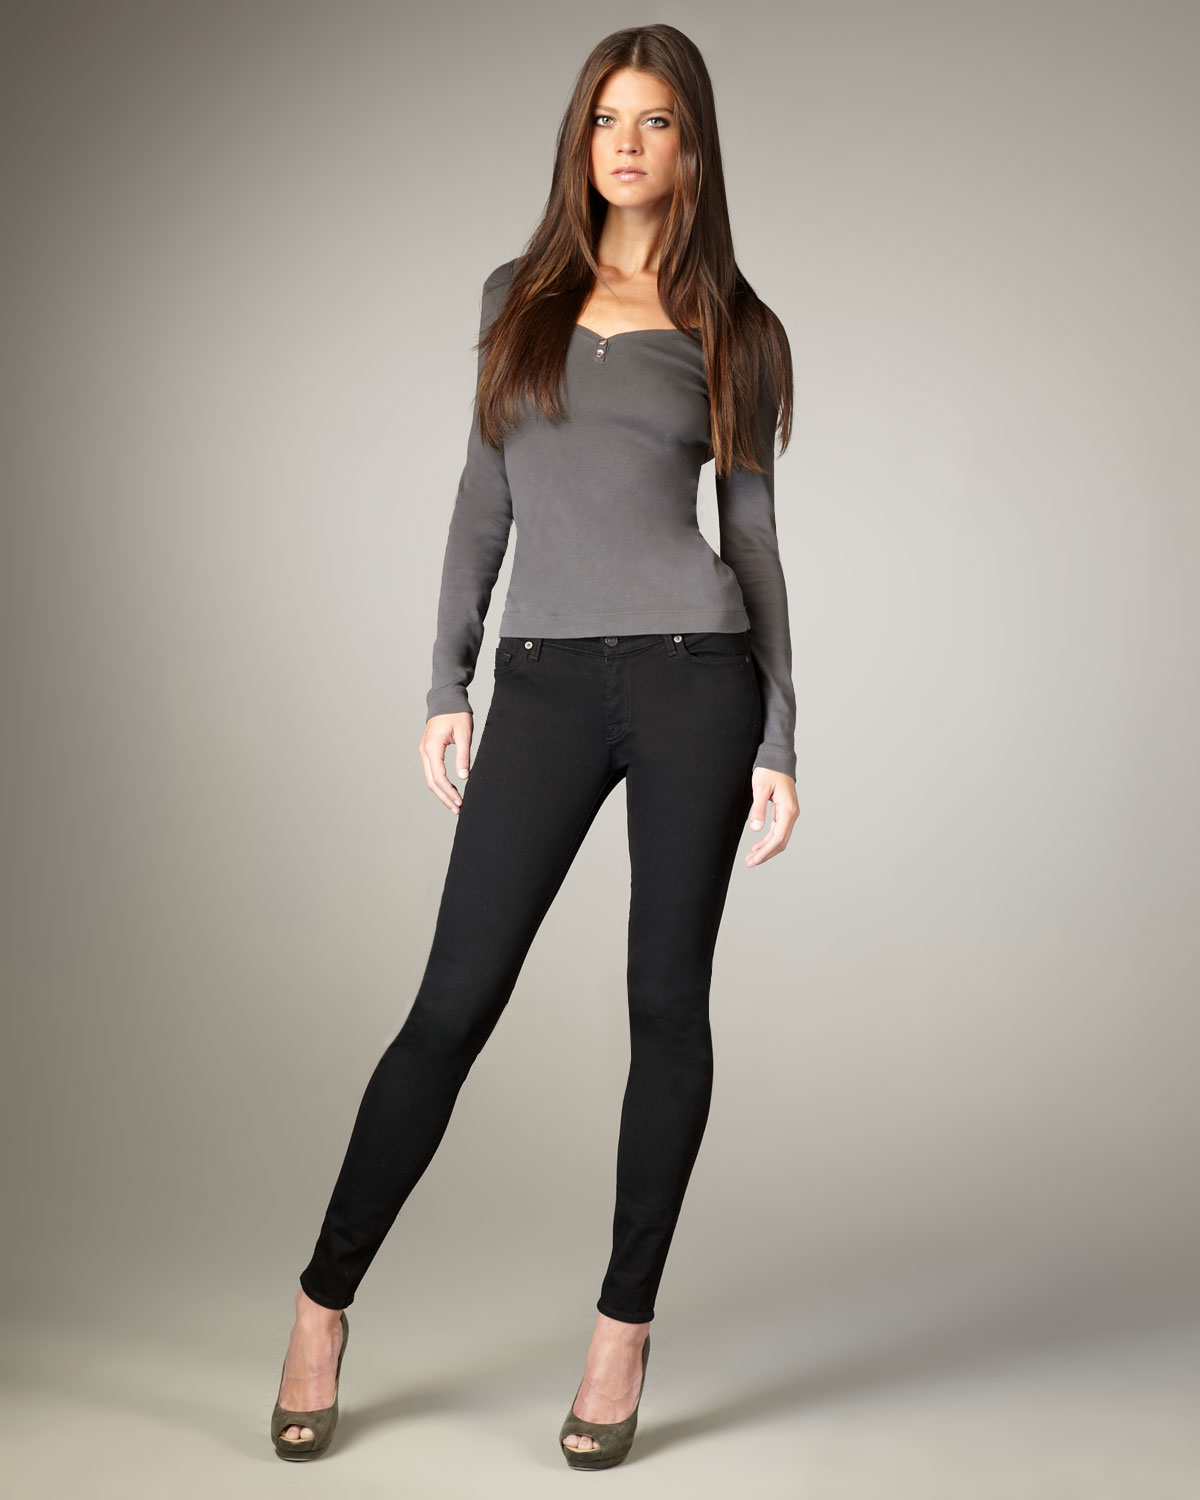 Shop for legging leggings skinny online at Target. Free shipping on purchases over $35 and save 5% every day with your Target REDcard.